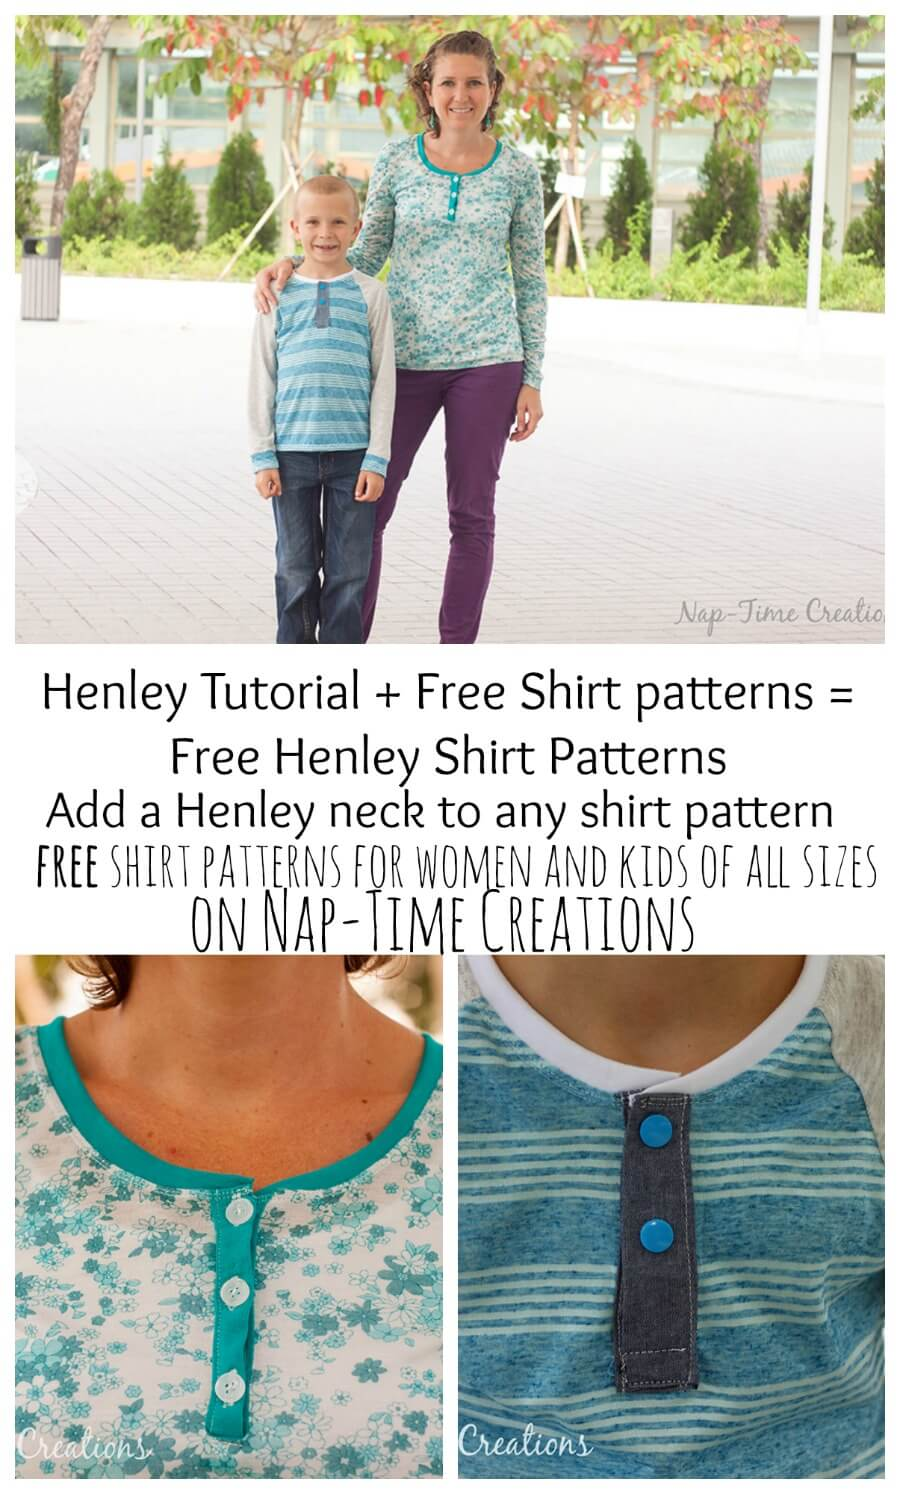 Free Henley Shirt Sewing Patterns for Women and kids from Nap-Time Creations